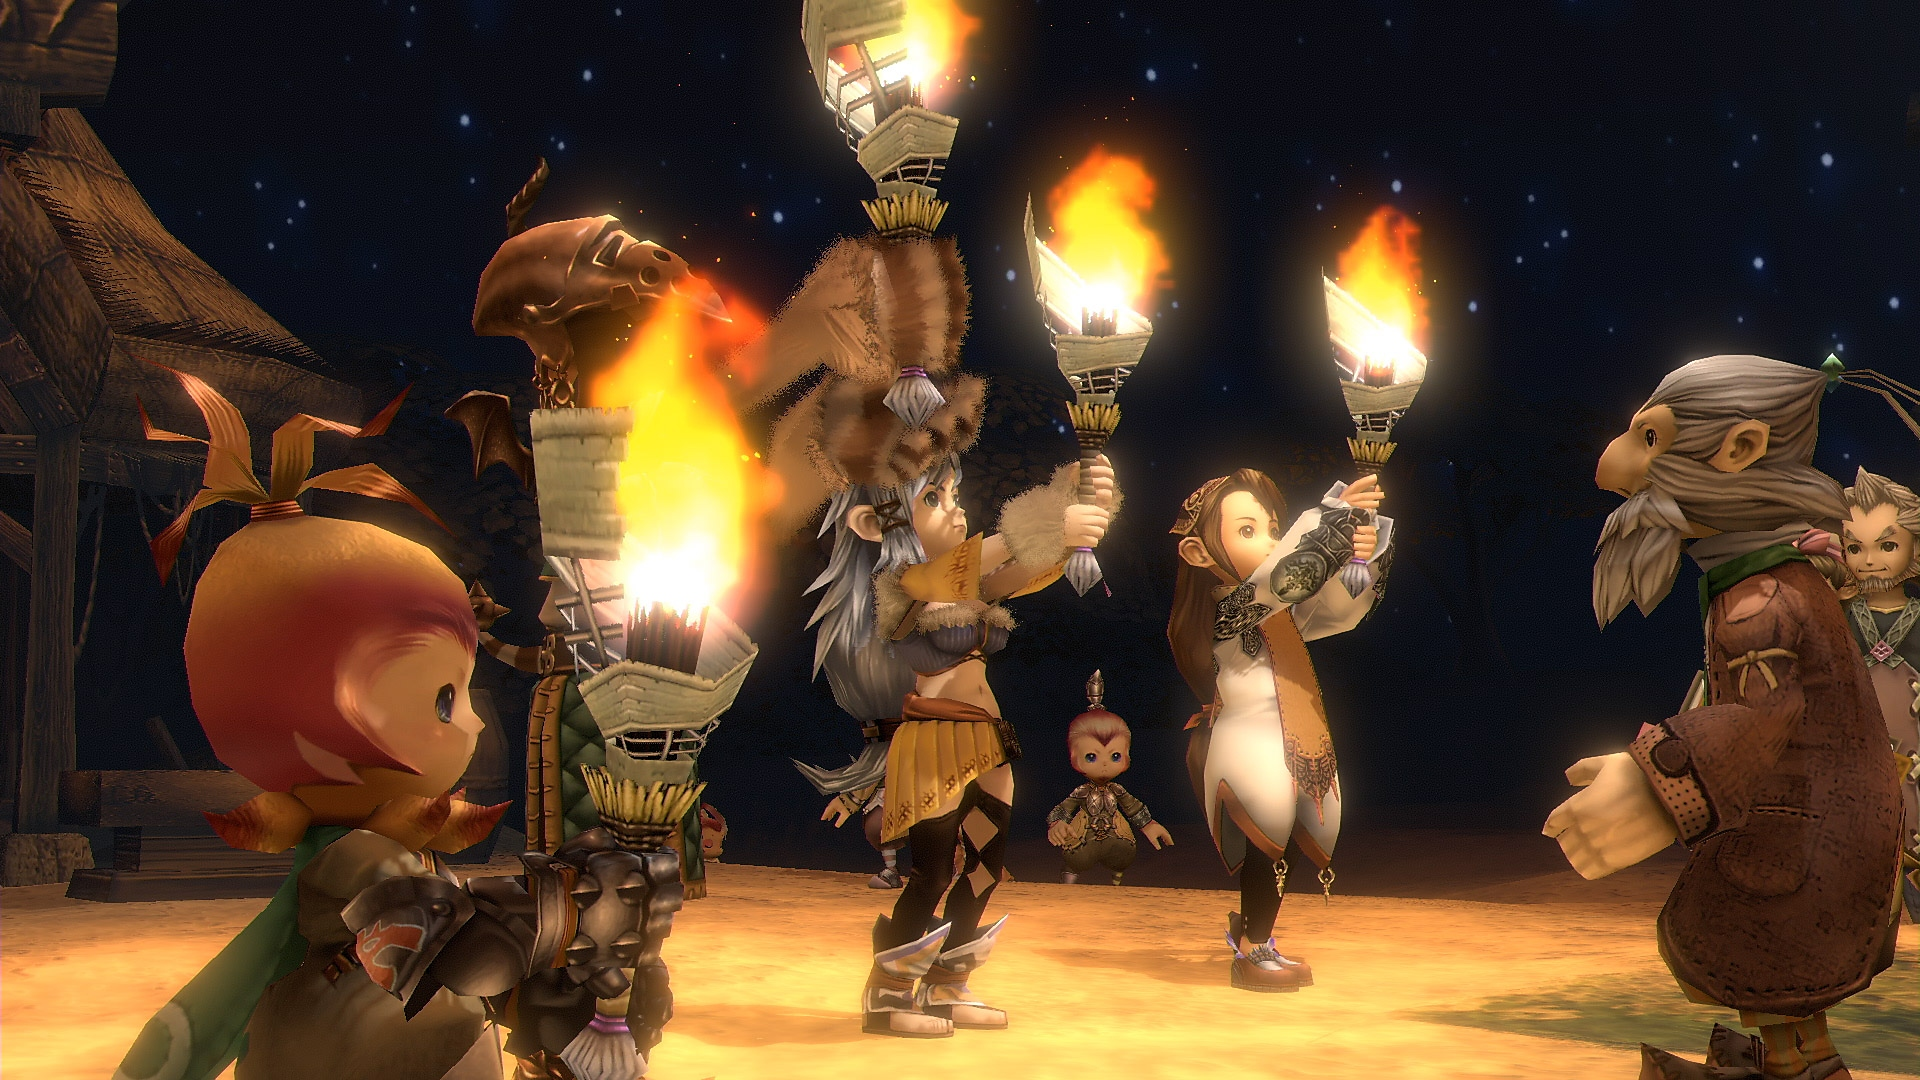 Final Fantasy Crystal Chronicles Remastered Edition – Captură de ecran din joc